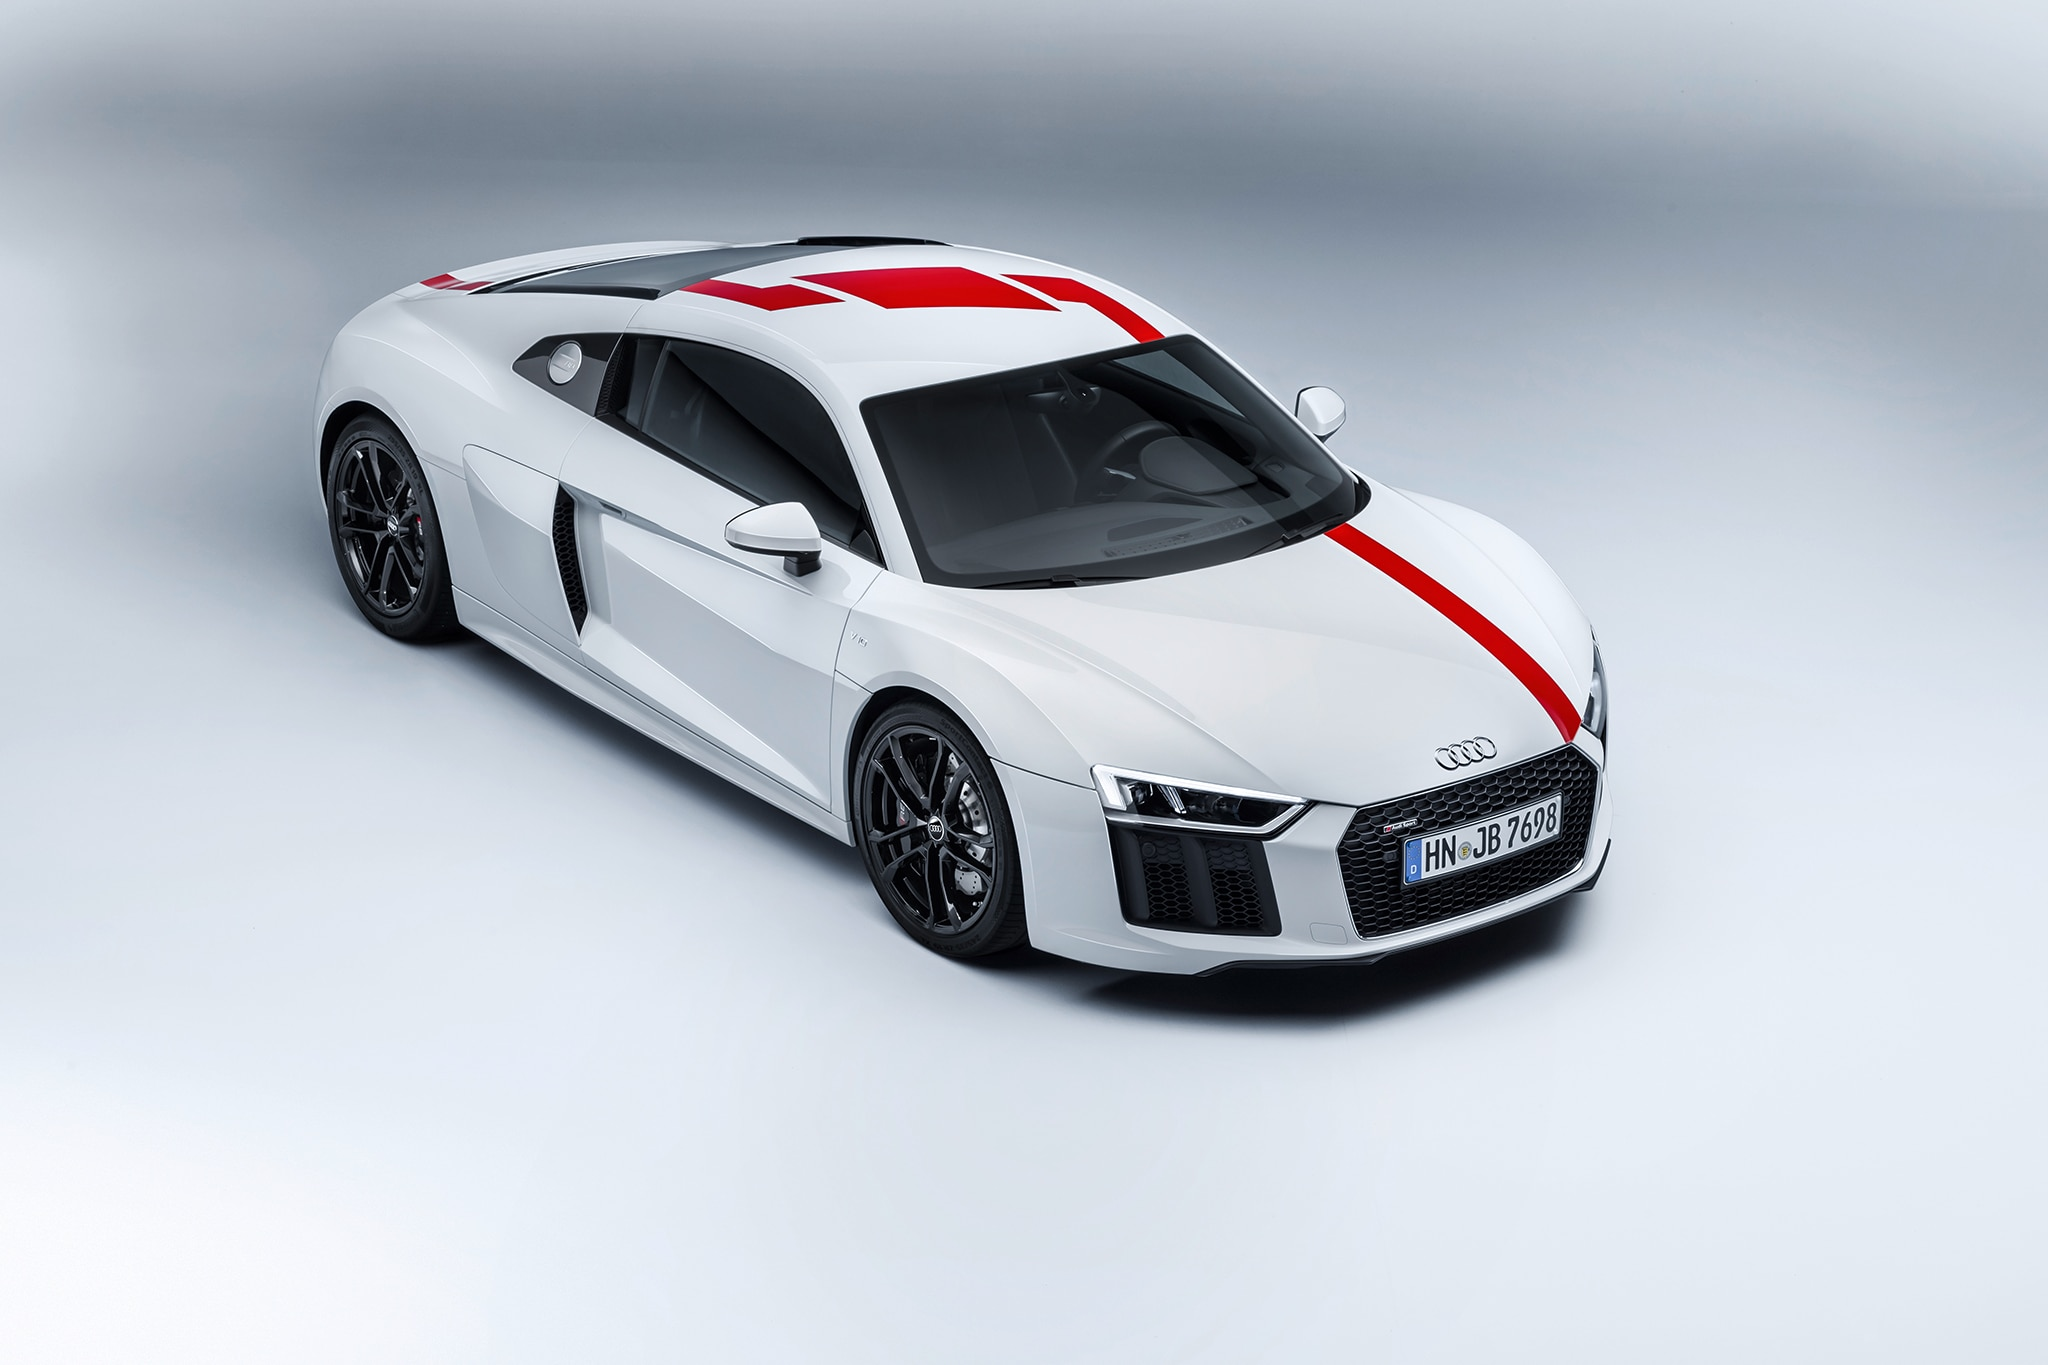 2018 Audi R8 V10 RWS Offers Pure Rear-Drive Fun